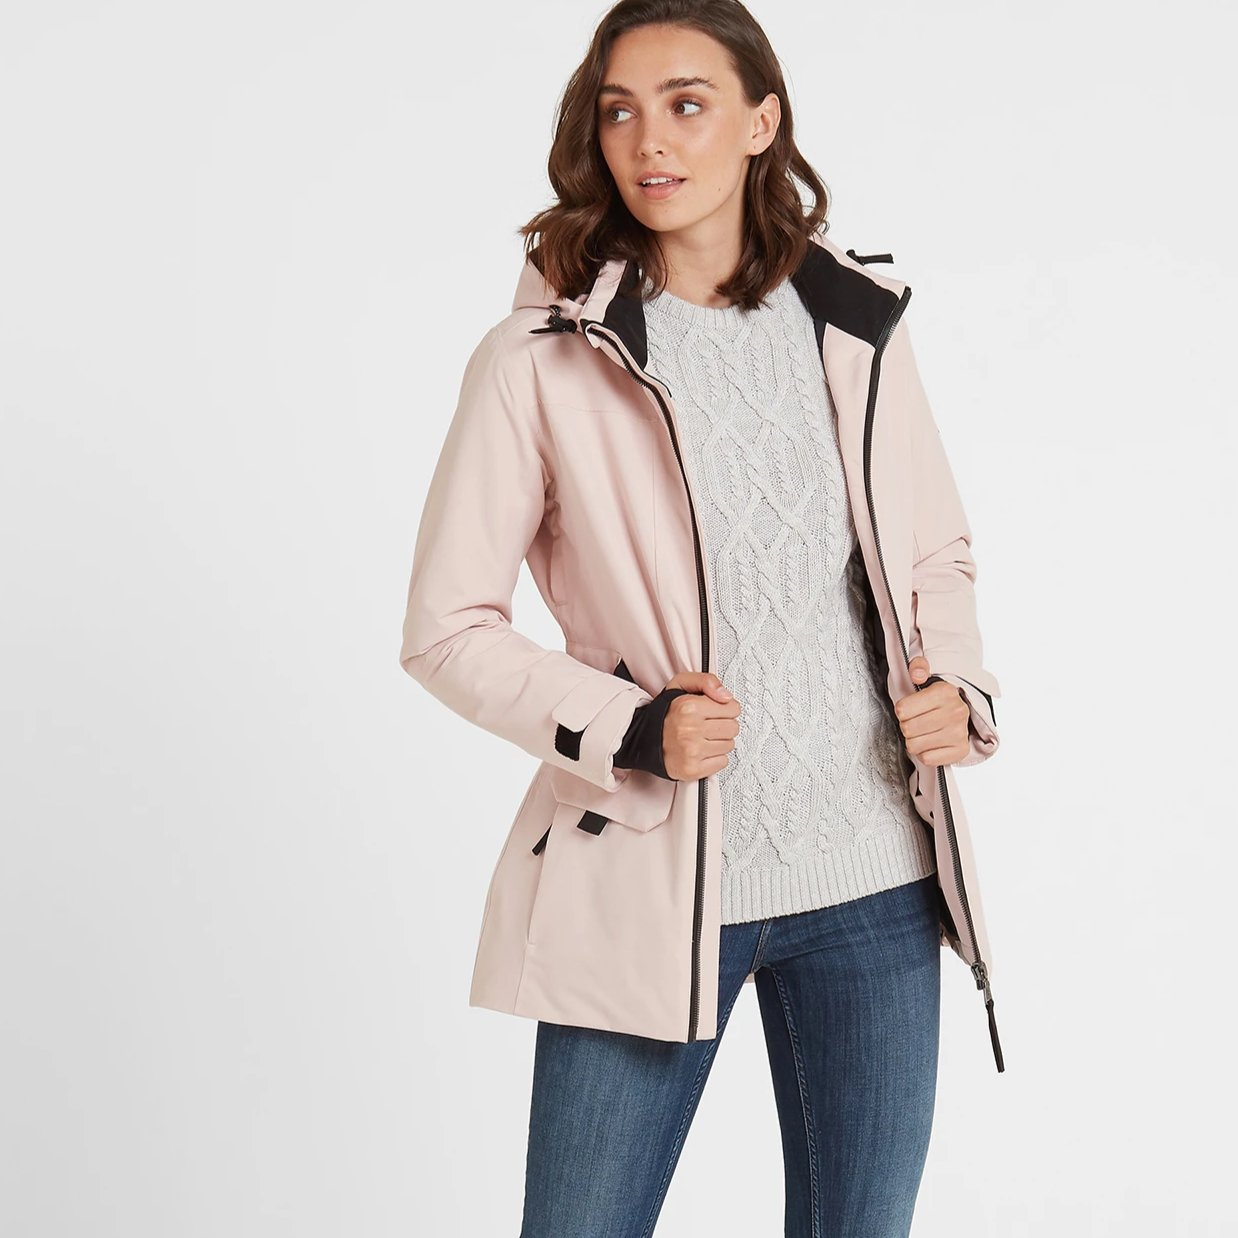 Helmsley Womens Winter Jacket - Rose Pink image 4